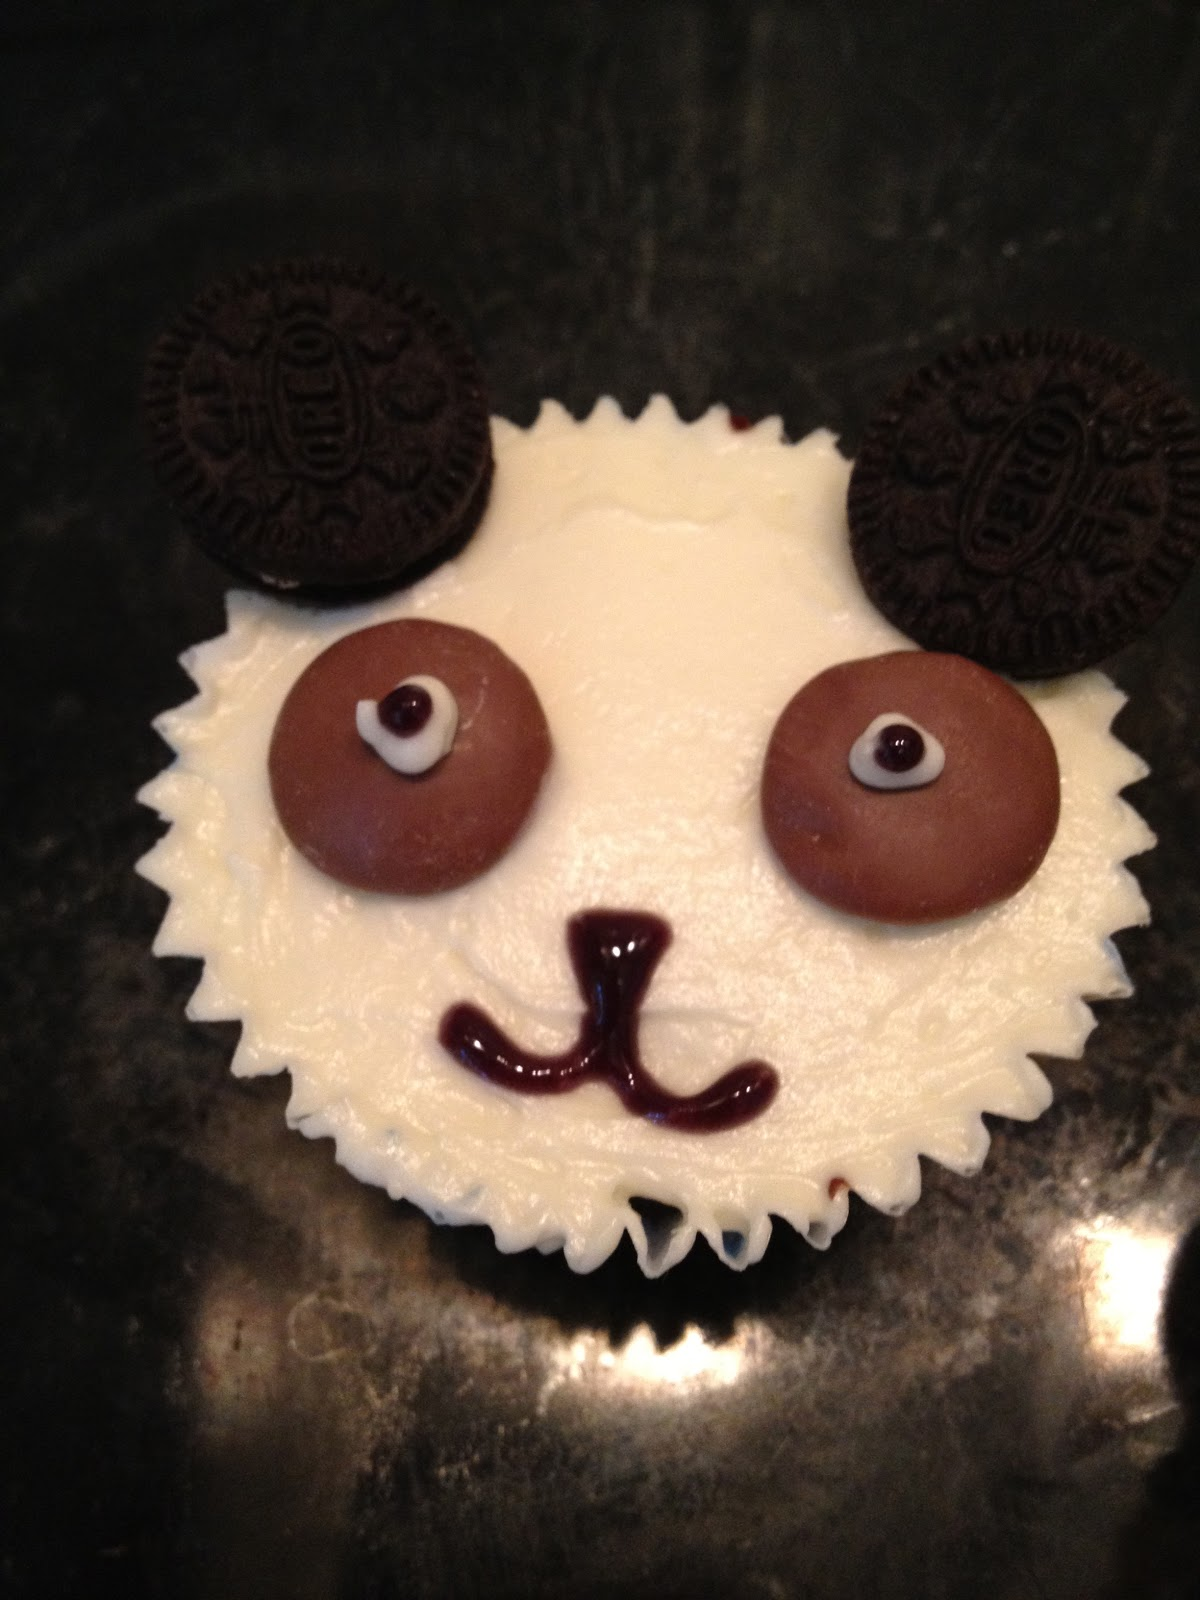 Rose Tinted Heart Cute Panda Cupcakes With Mini Oreo Ears